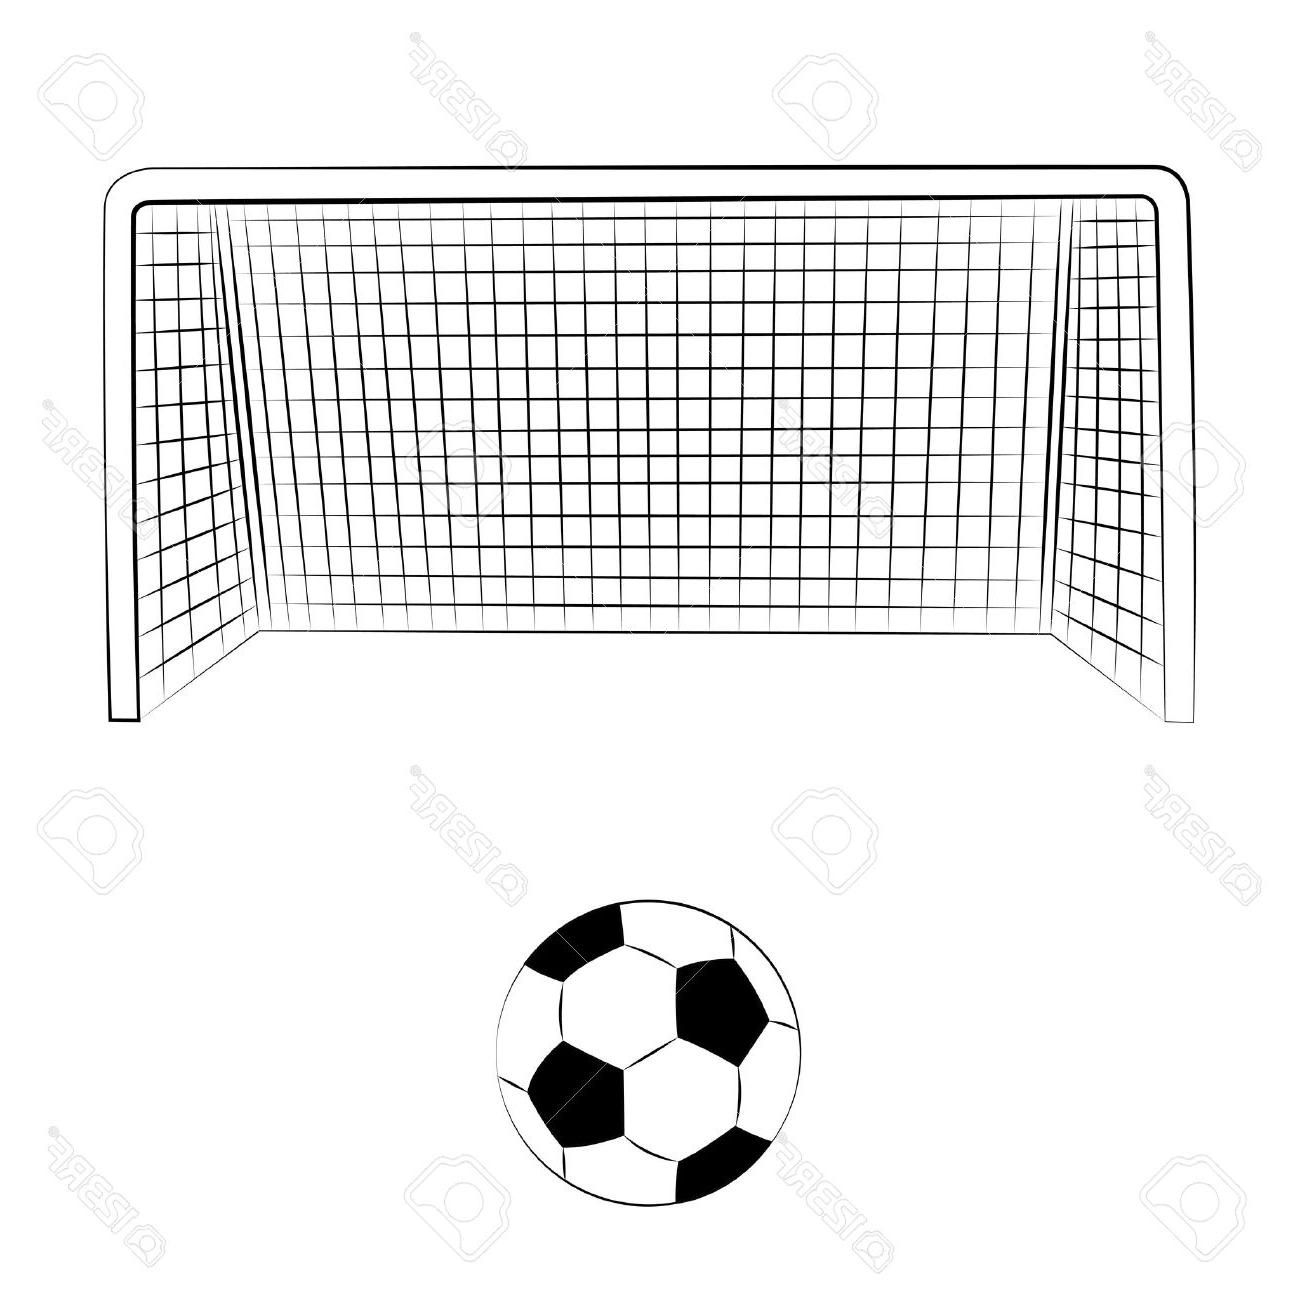 Goals clipart soccer game, Picture #2759882 goals clipart.